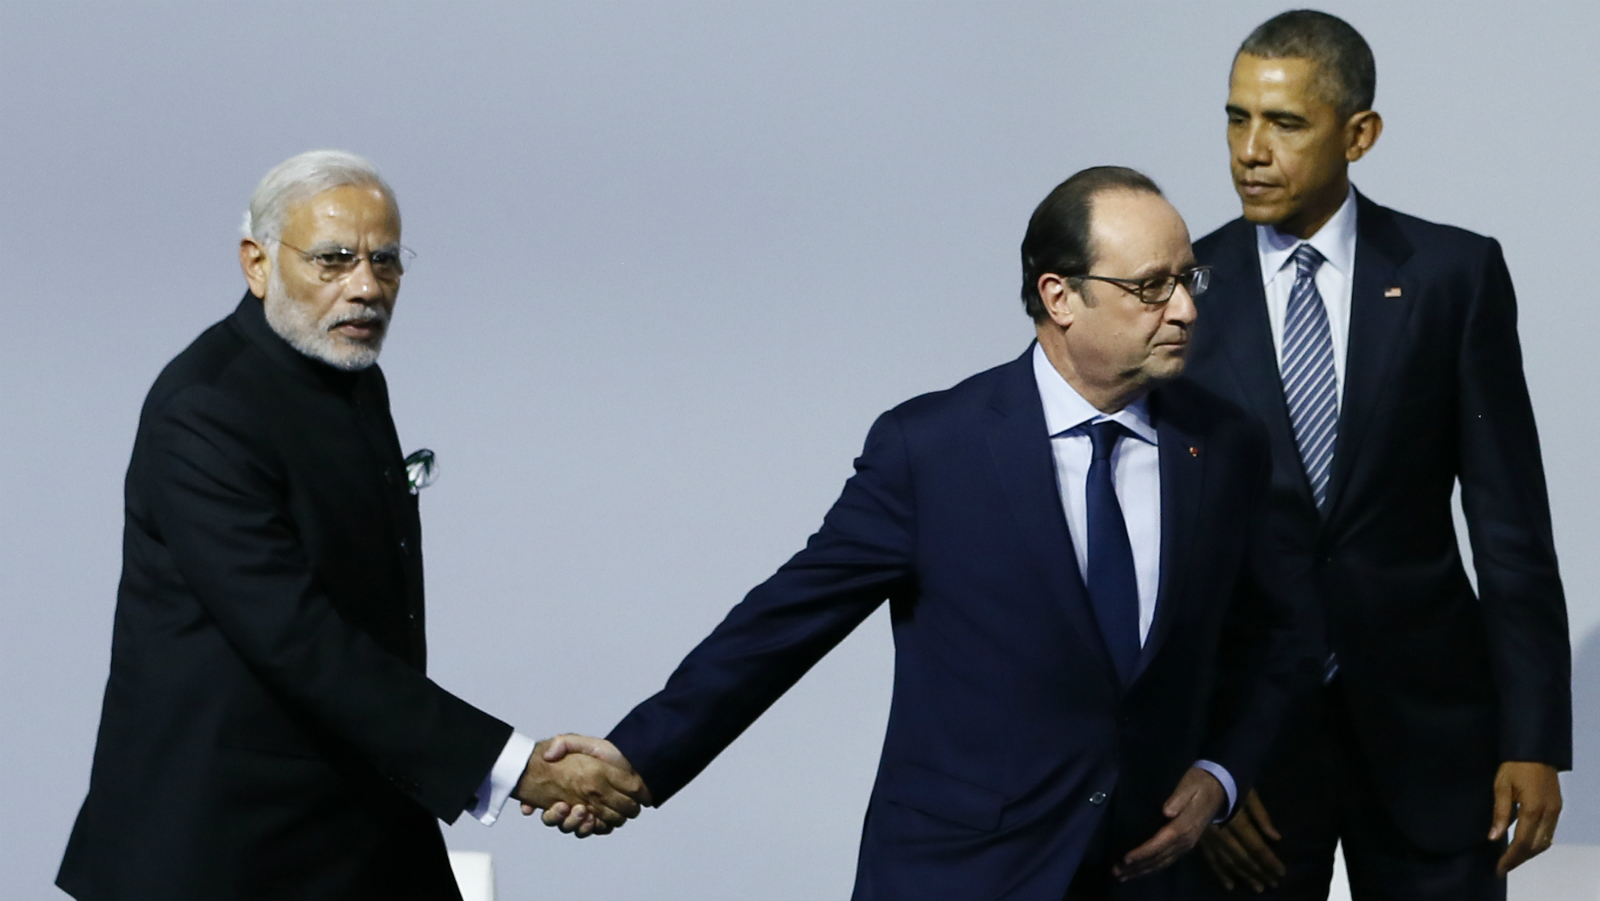 French President Francois Hollande, center, shakes hands with Indian Prime Minister Narendra Modi, left, as US President Barack Obama leaves the 'Mission Innovation: Accelerating the Clean Energy Revolution' meeting at the COP2, United Nations Climate Change Conference, in Le Bourget, north of Paris, Monday, Nov. 30 2015. (Ian Langsdon, Pool photo via AP)